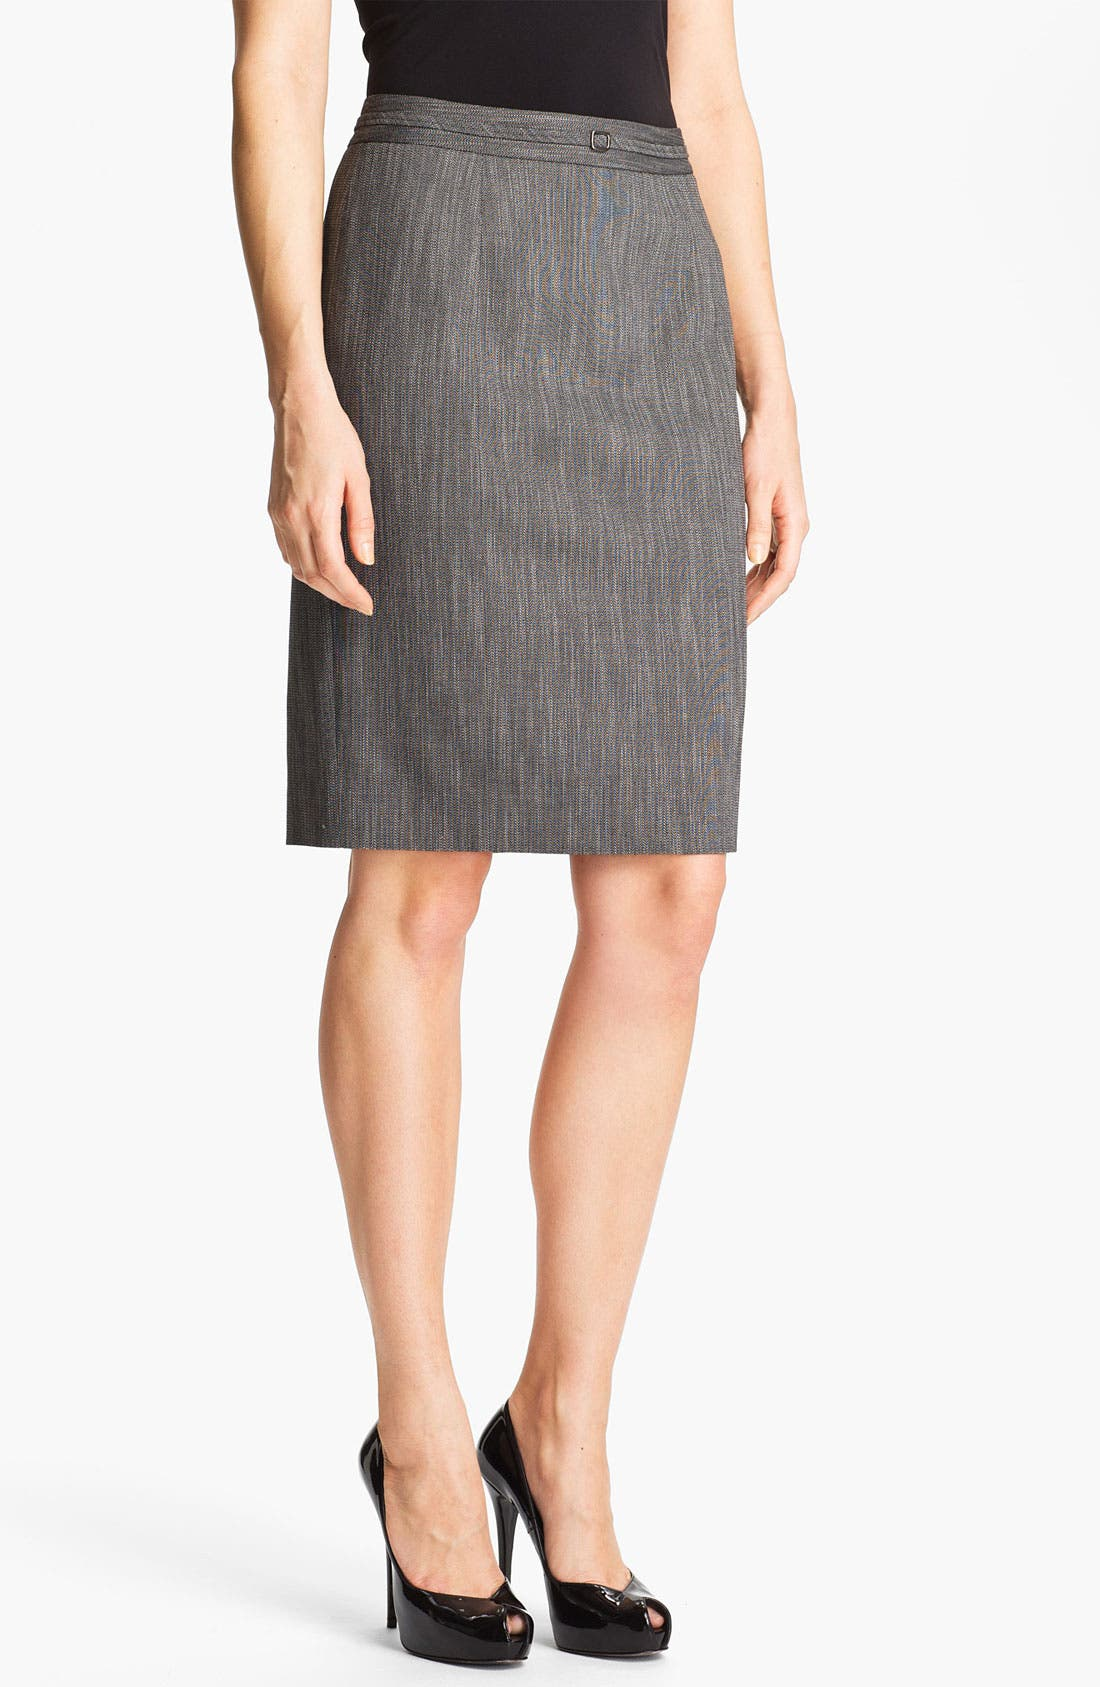 Alternate Image 1 Selected - Classiques Entier® 'Speckled Weave' Skirt